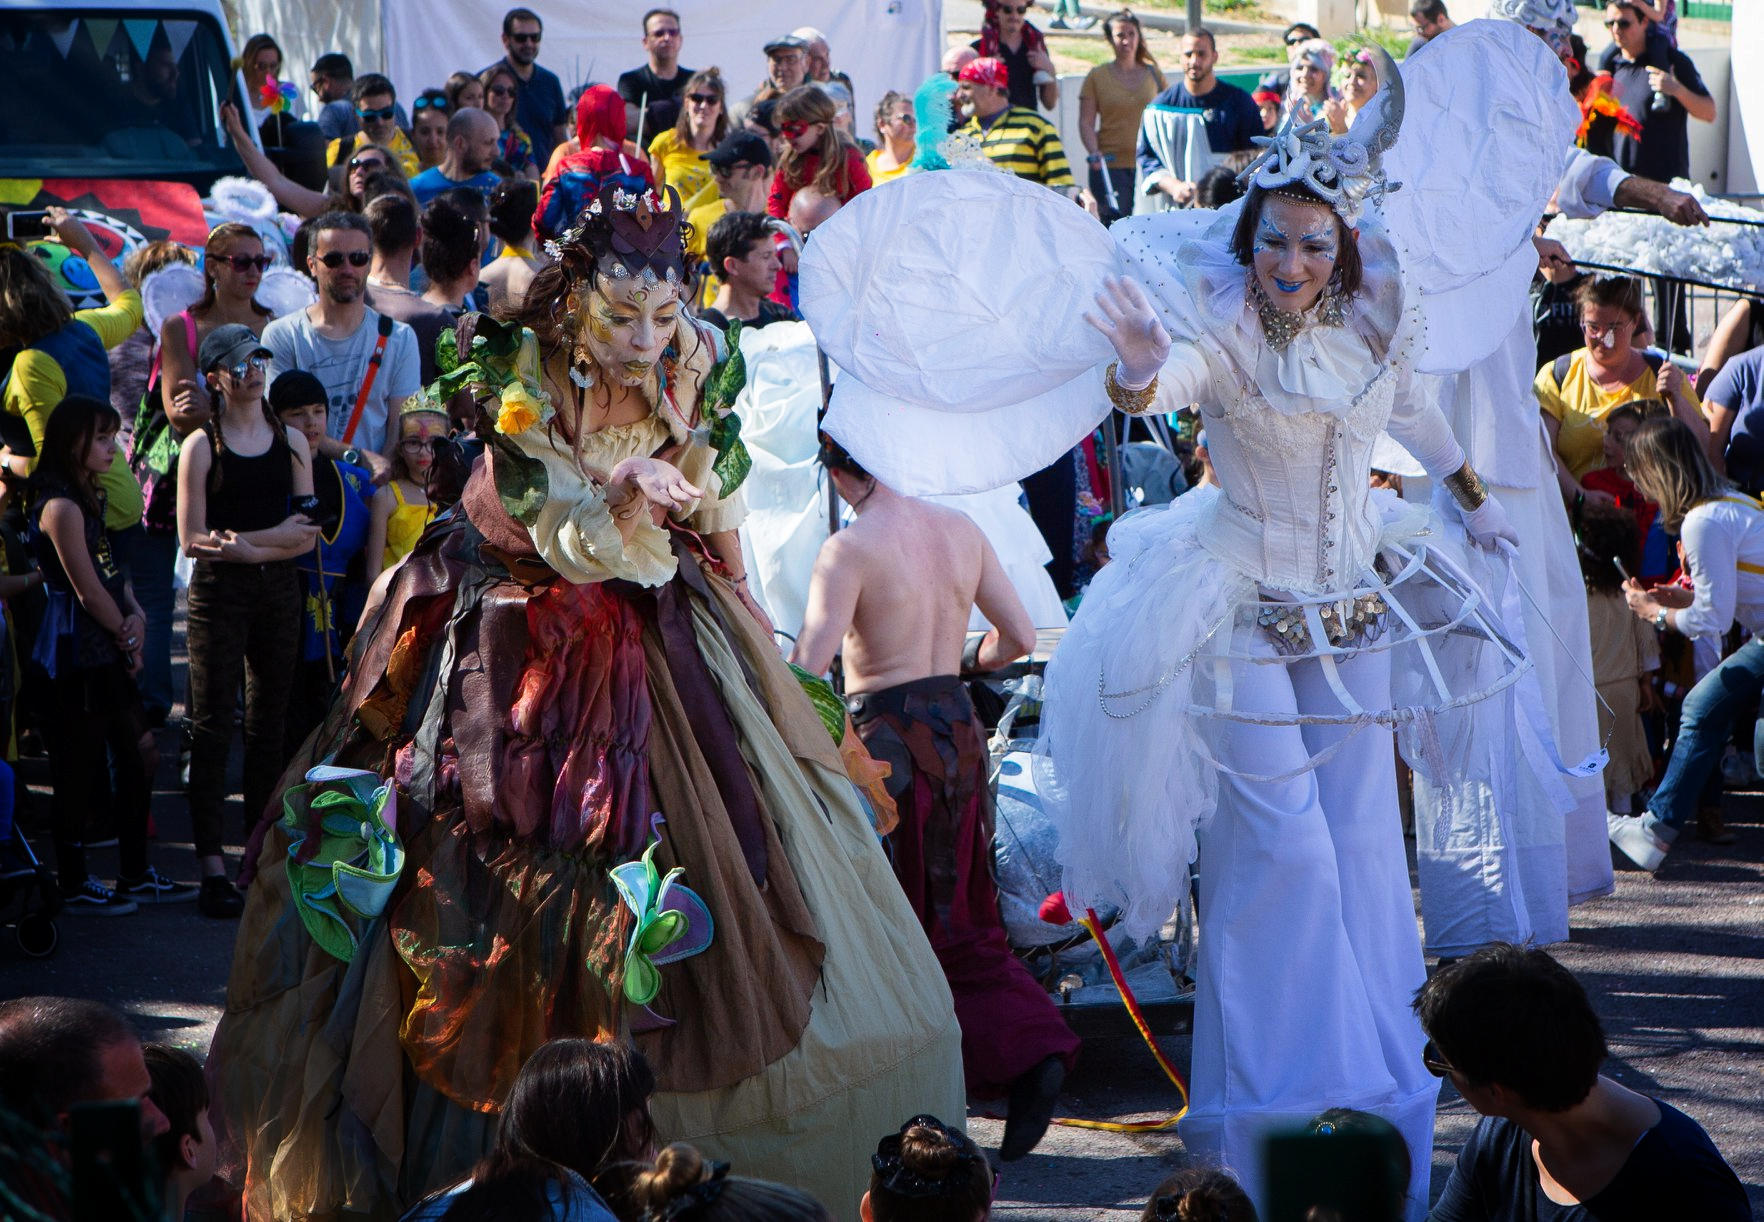 Parade carnaval 4 elements